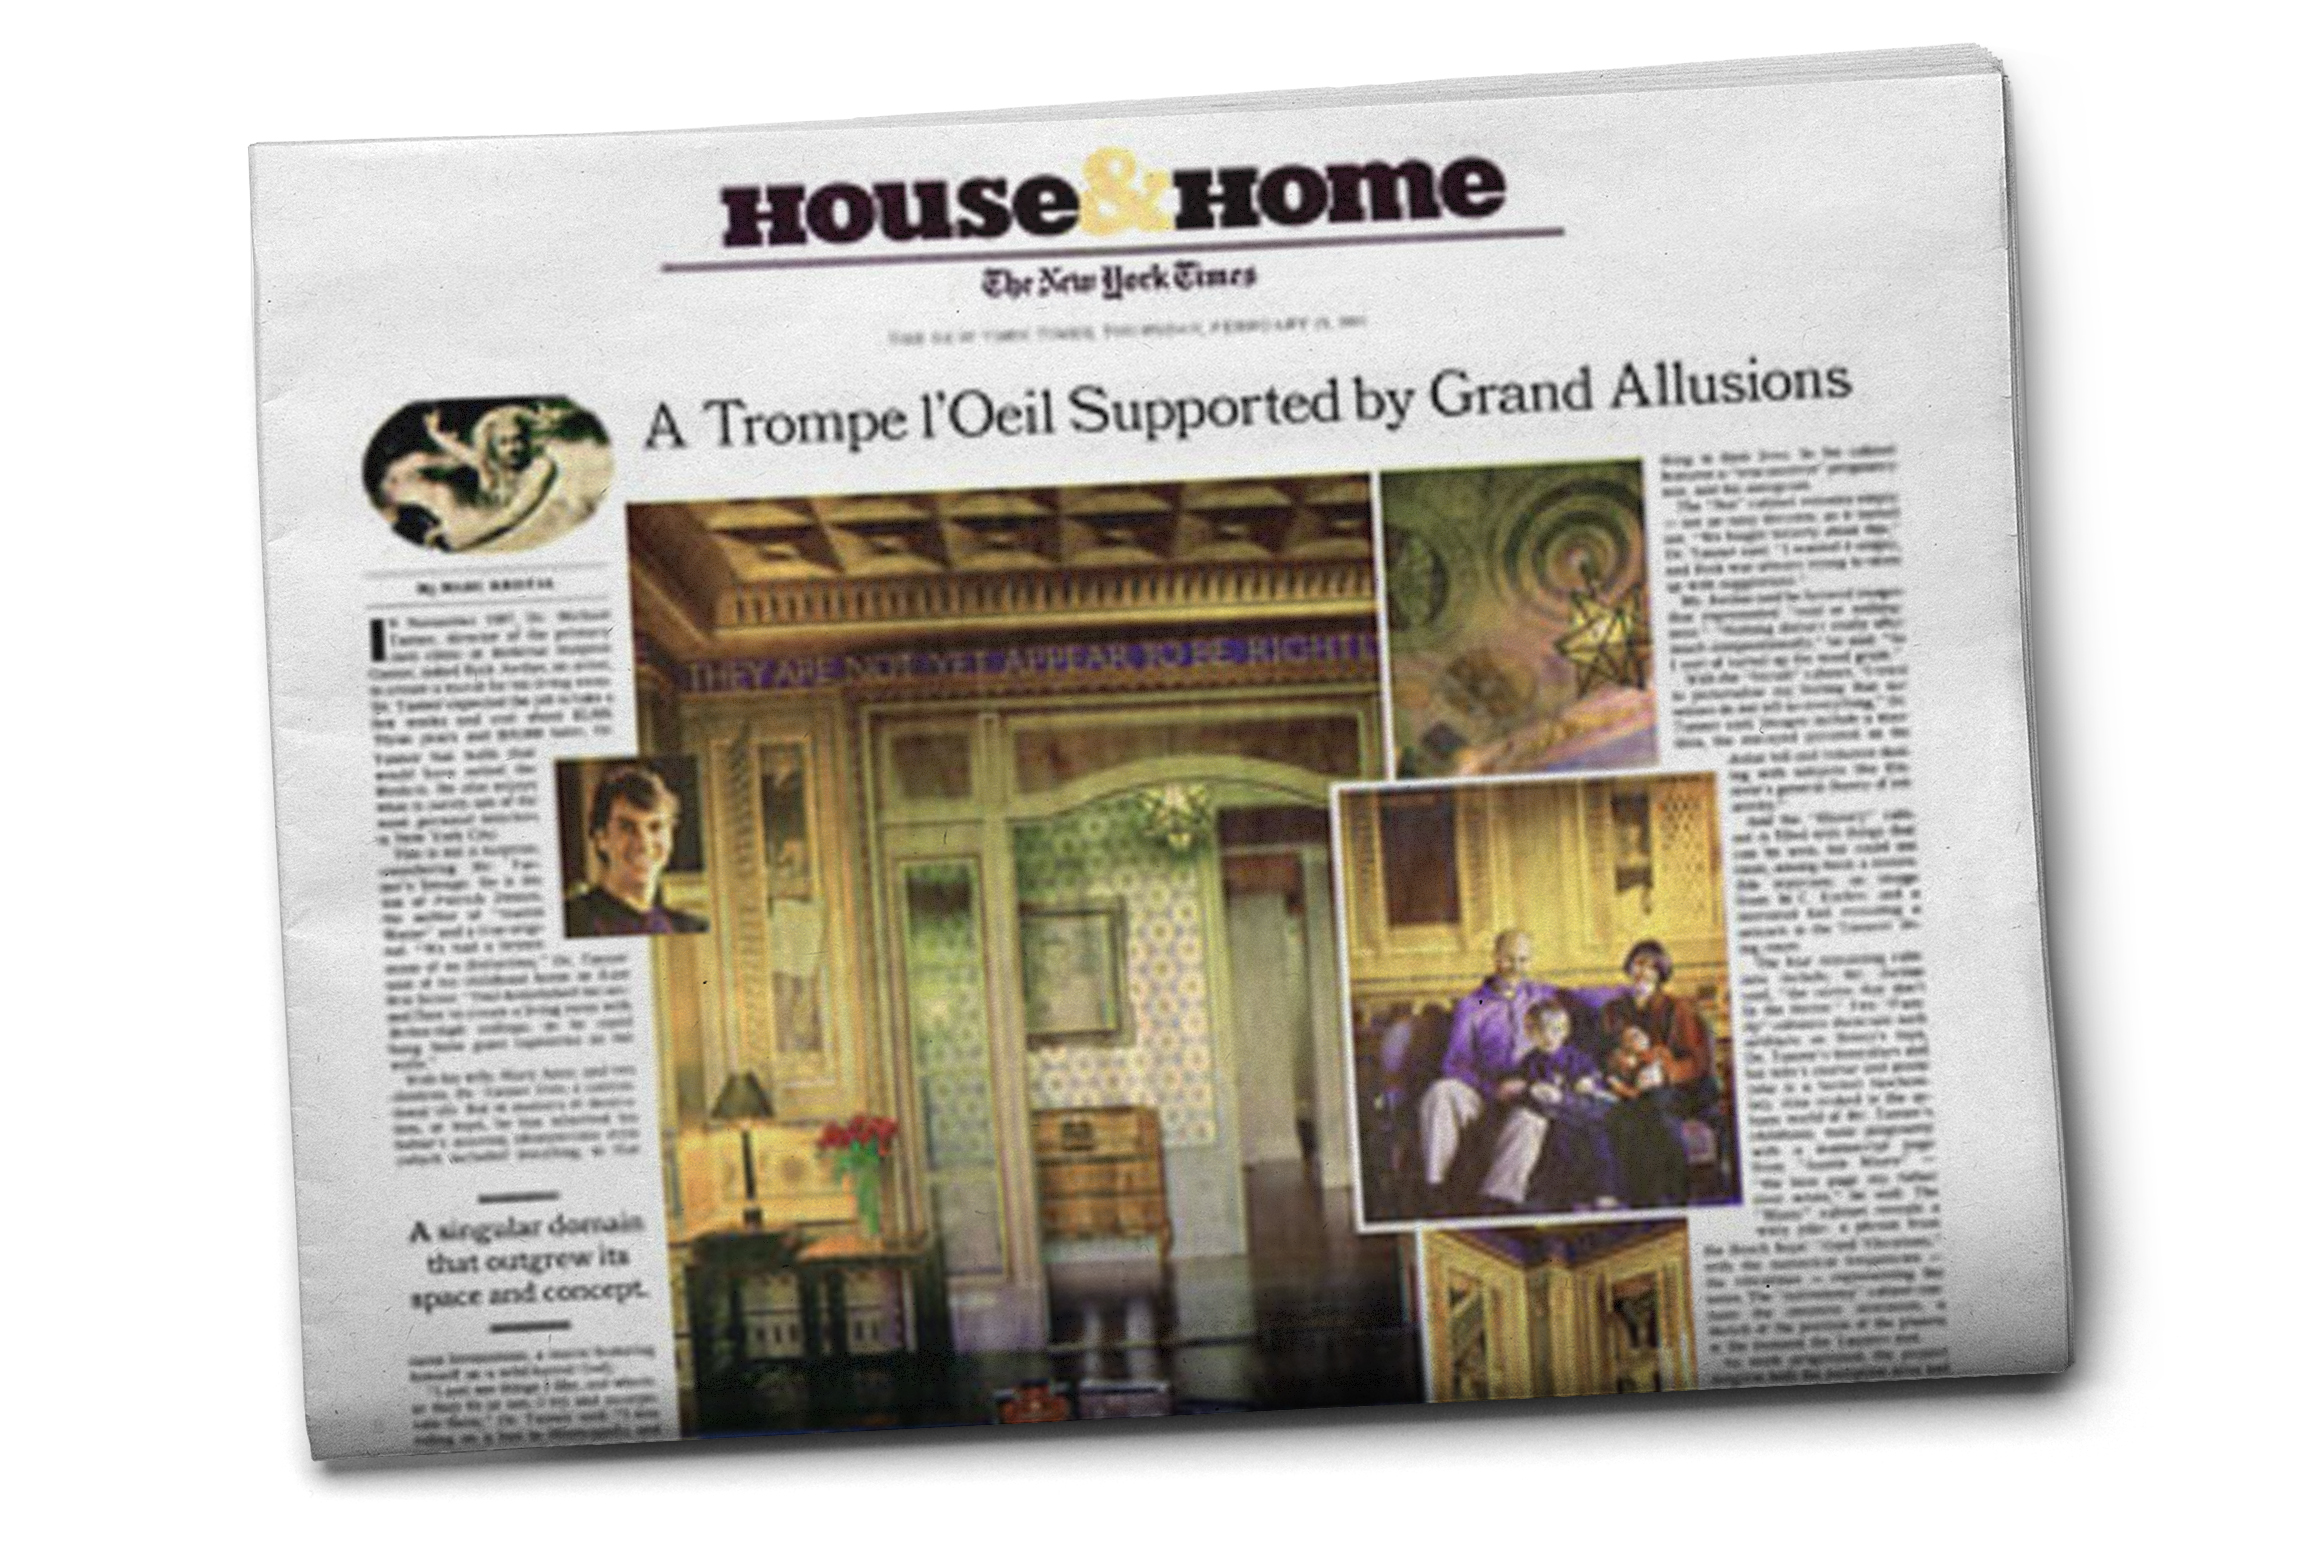 New York Times / House & Home